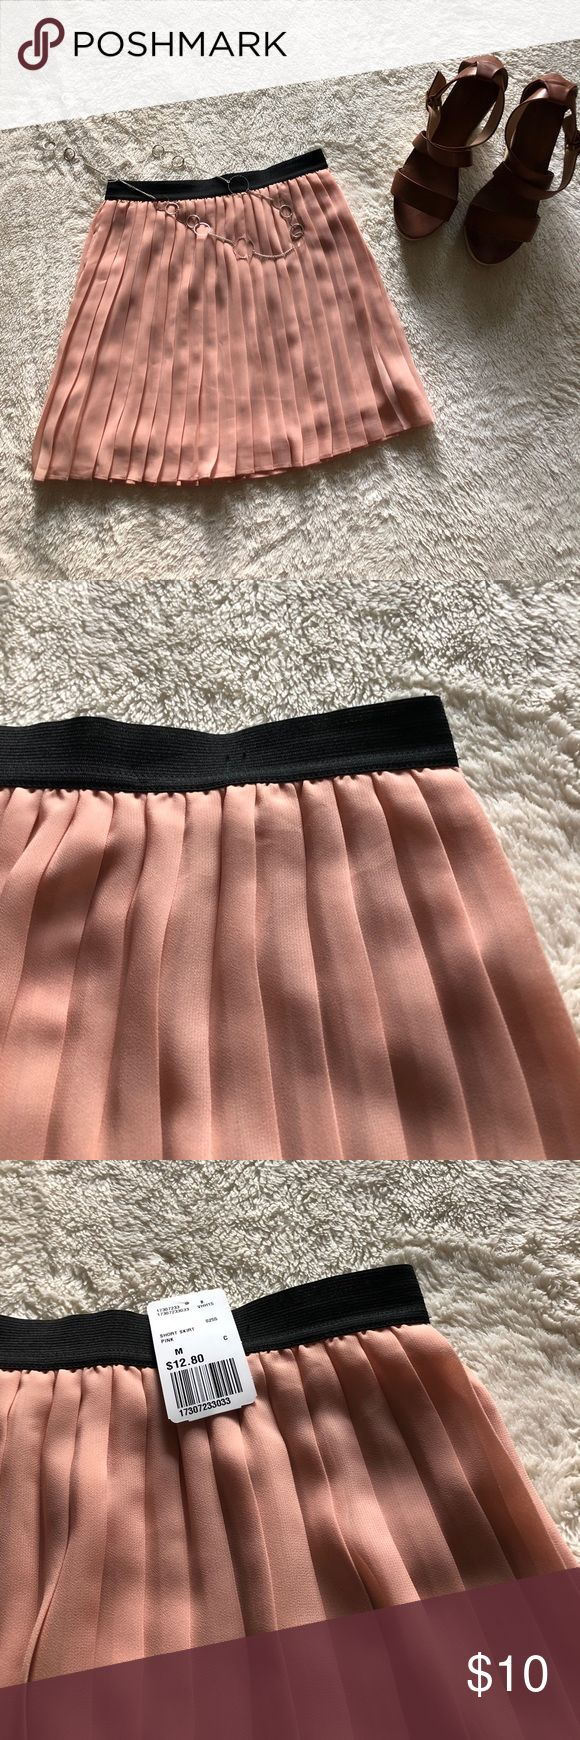 Forever 21 pink pleated Skirt! Size Medium! NWT! Fun, Flirty, and Pink forever 21 skirt! Great for a dirty date or a girls night out! Match with wedges or heals! Dress up for a club or dress down for a bbq!   The color is more of a blush or rust rose color!   This skirt is great because it has a lining!   100% Polyester. Forever 21 Skirts Mini